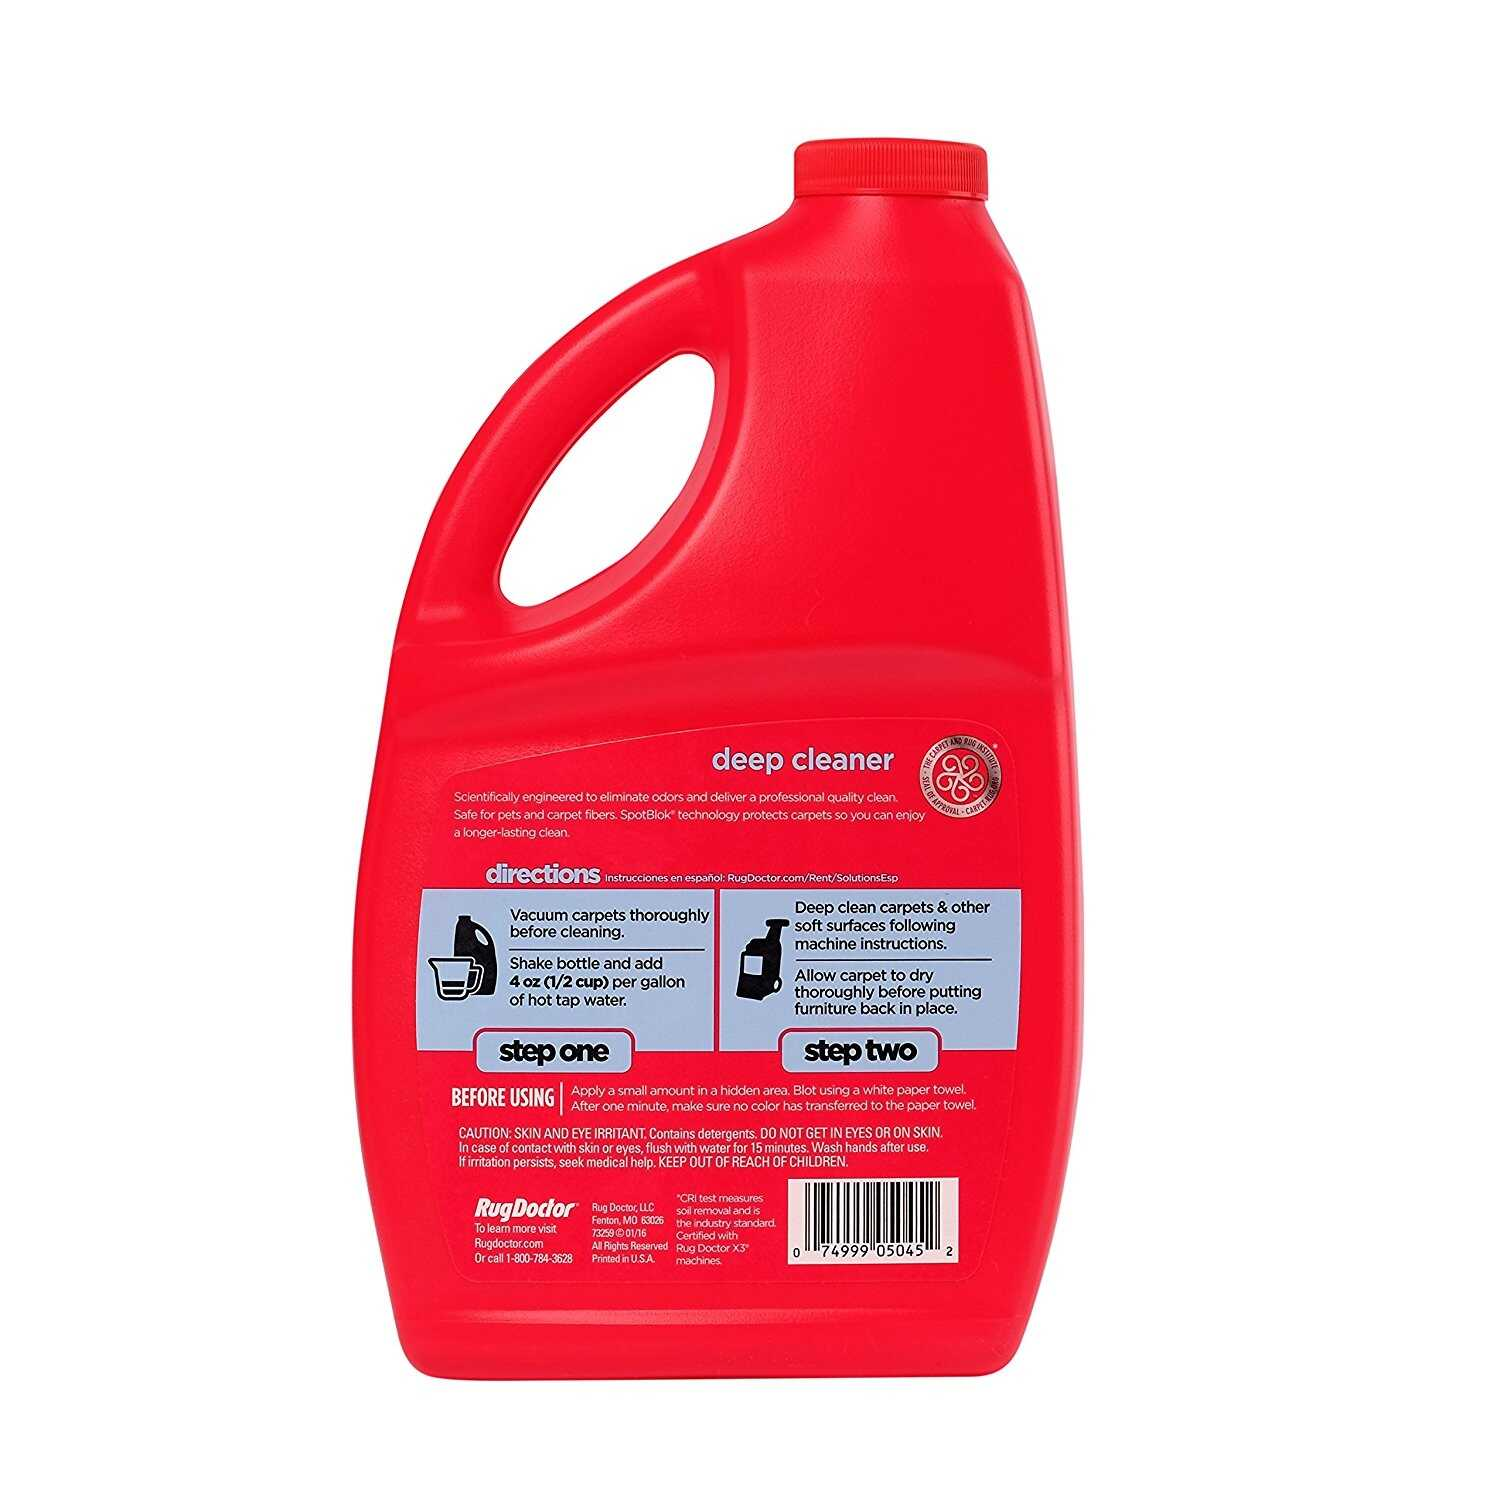 Rug Doctor  Oxy Deep Cleaner  Daybreak Scent Carpet Cleaner  48 oz. Liquid  Concentrated